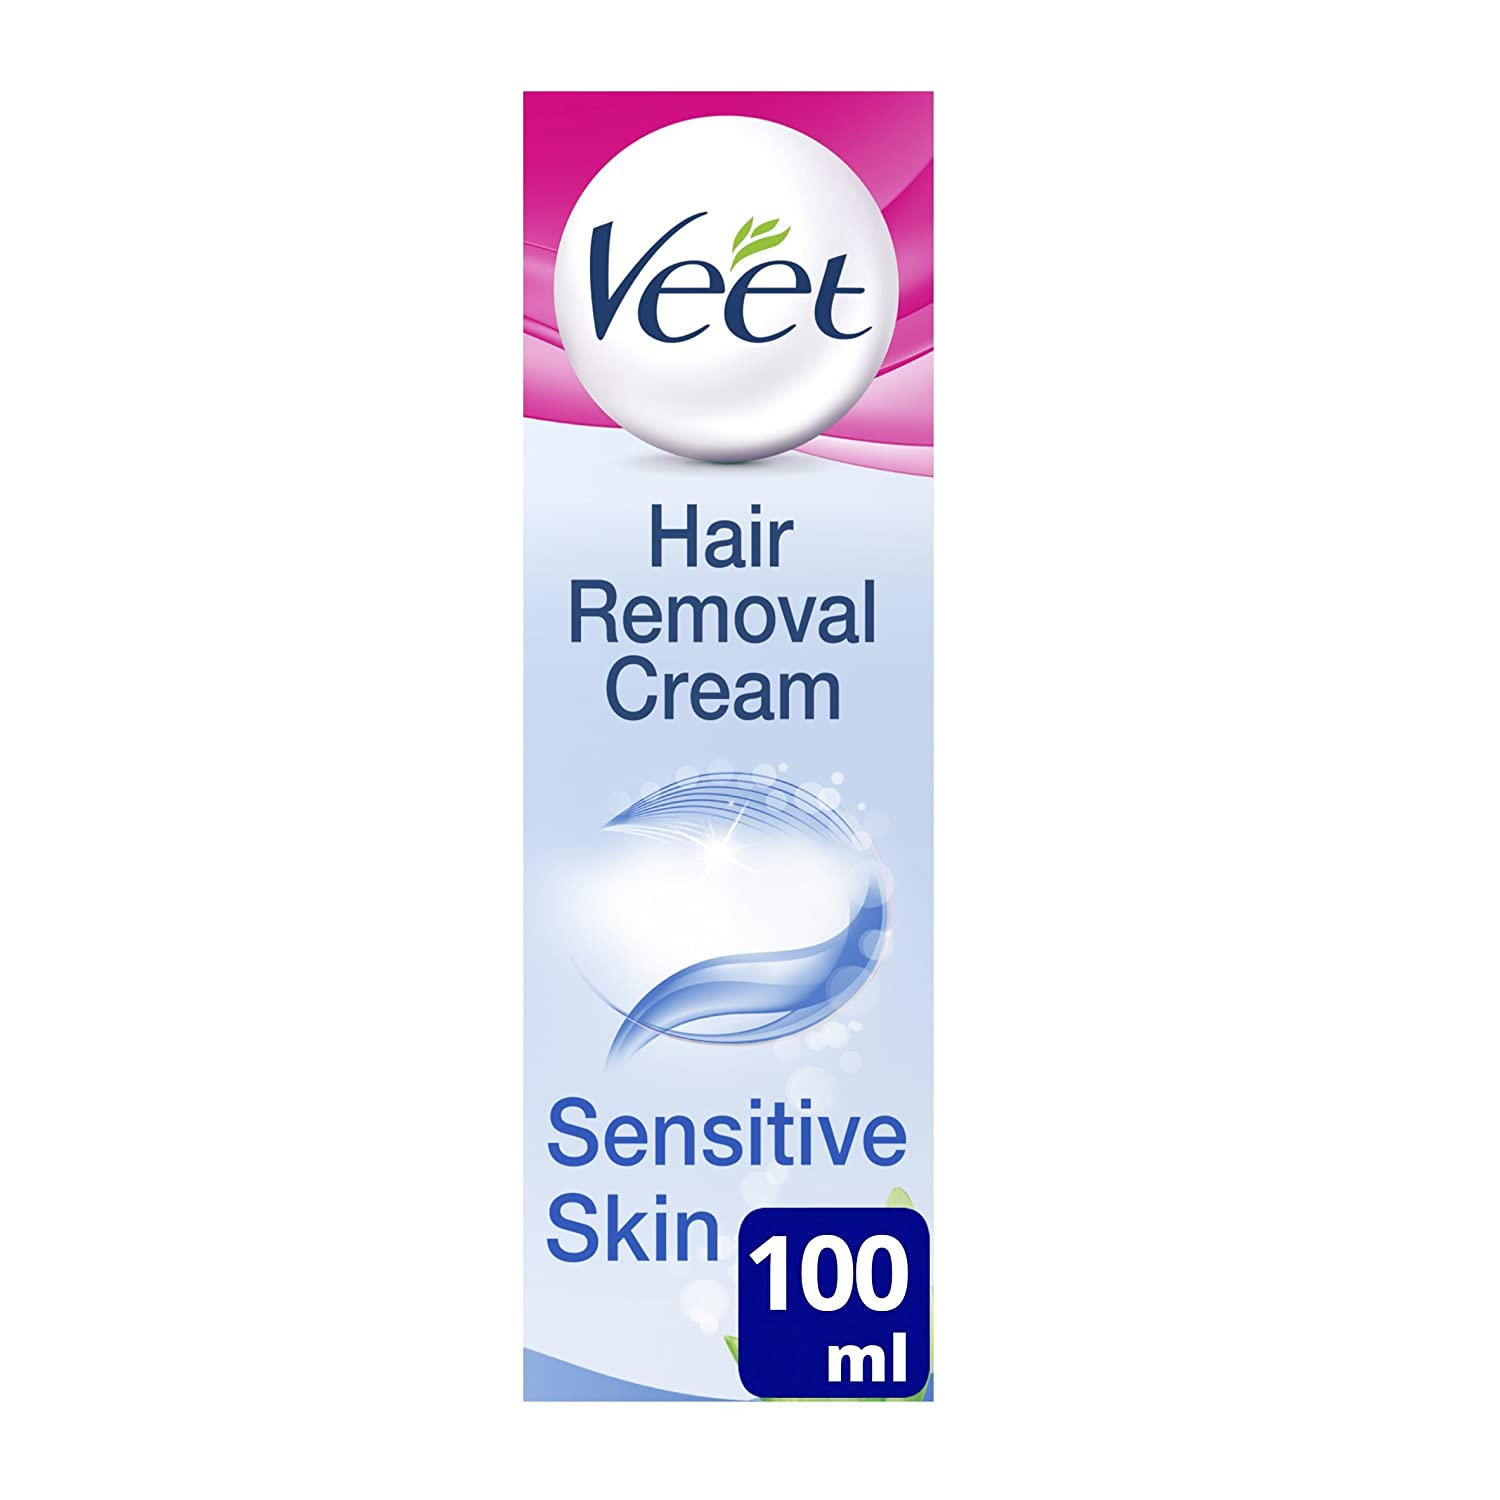 Veet Sensitive Skin Hair Removal Cream Aloe Vera & Vitamin E 100ml 89839